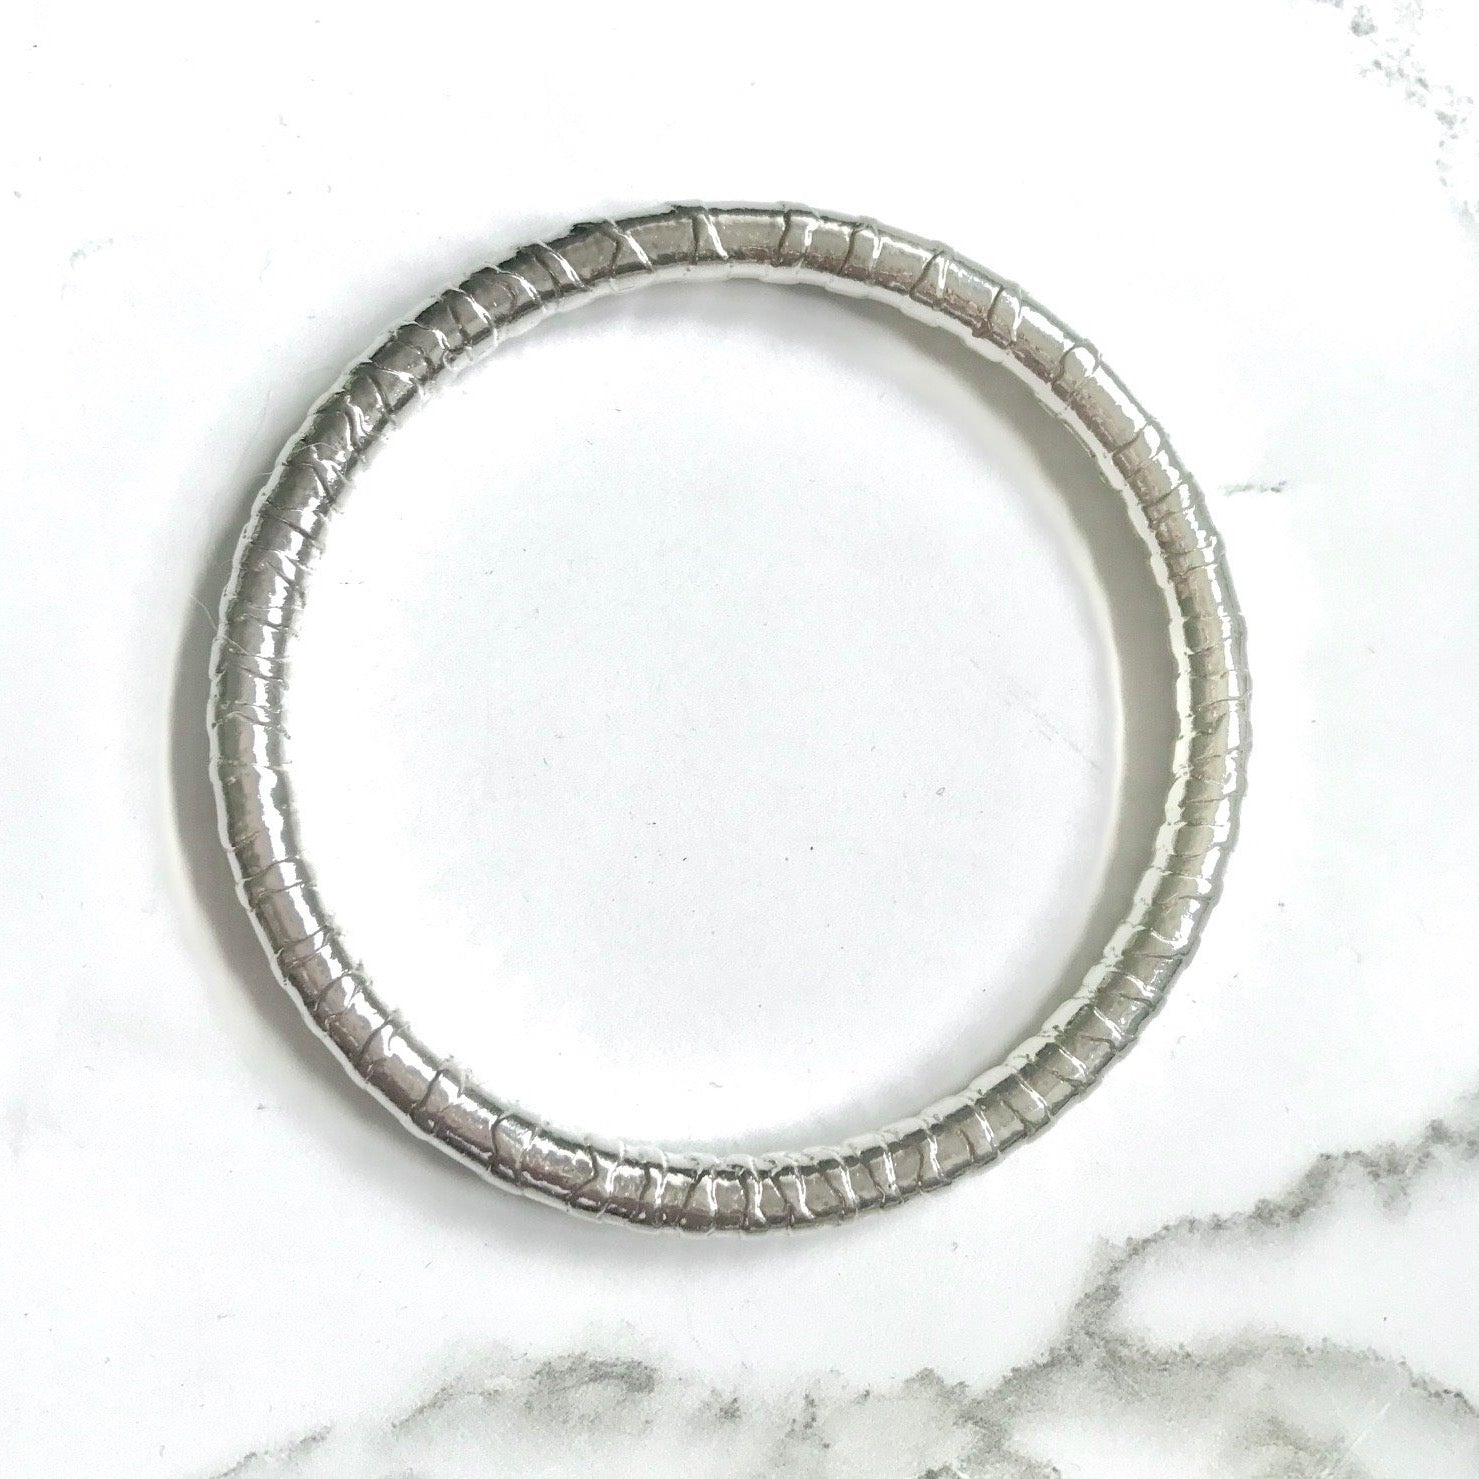 Zebra striped Sterling silver bangle